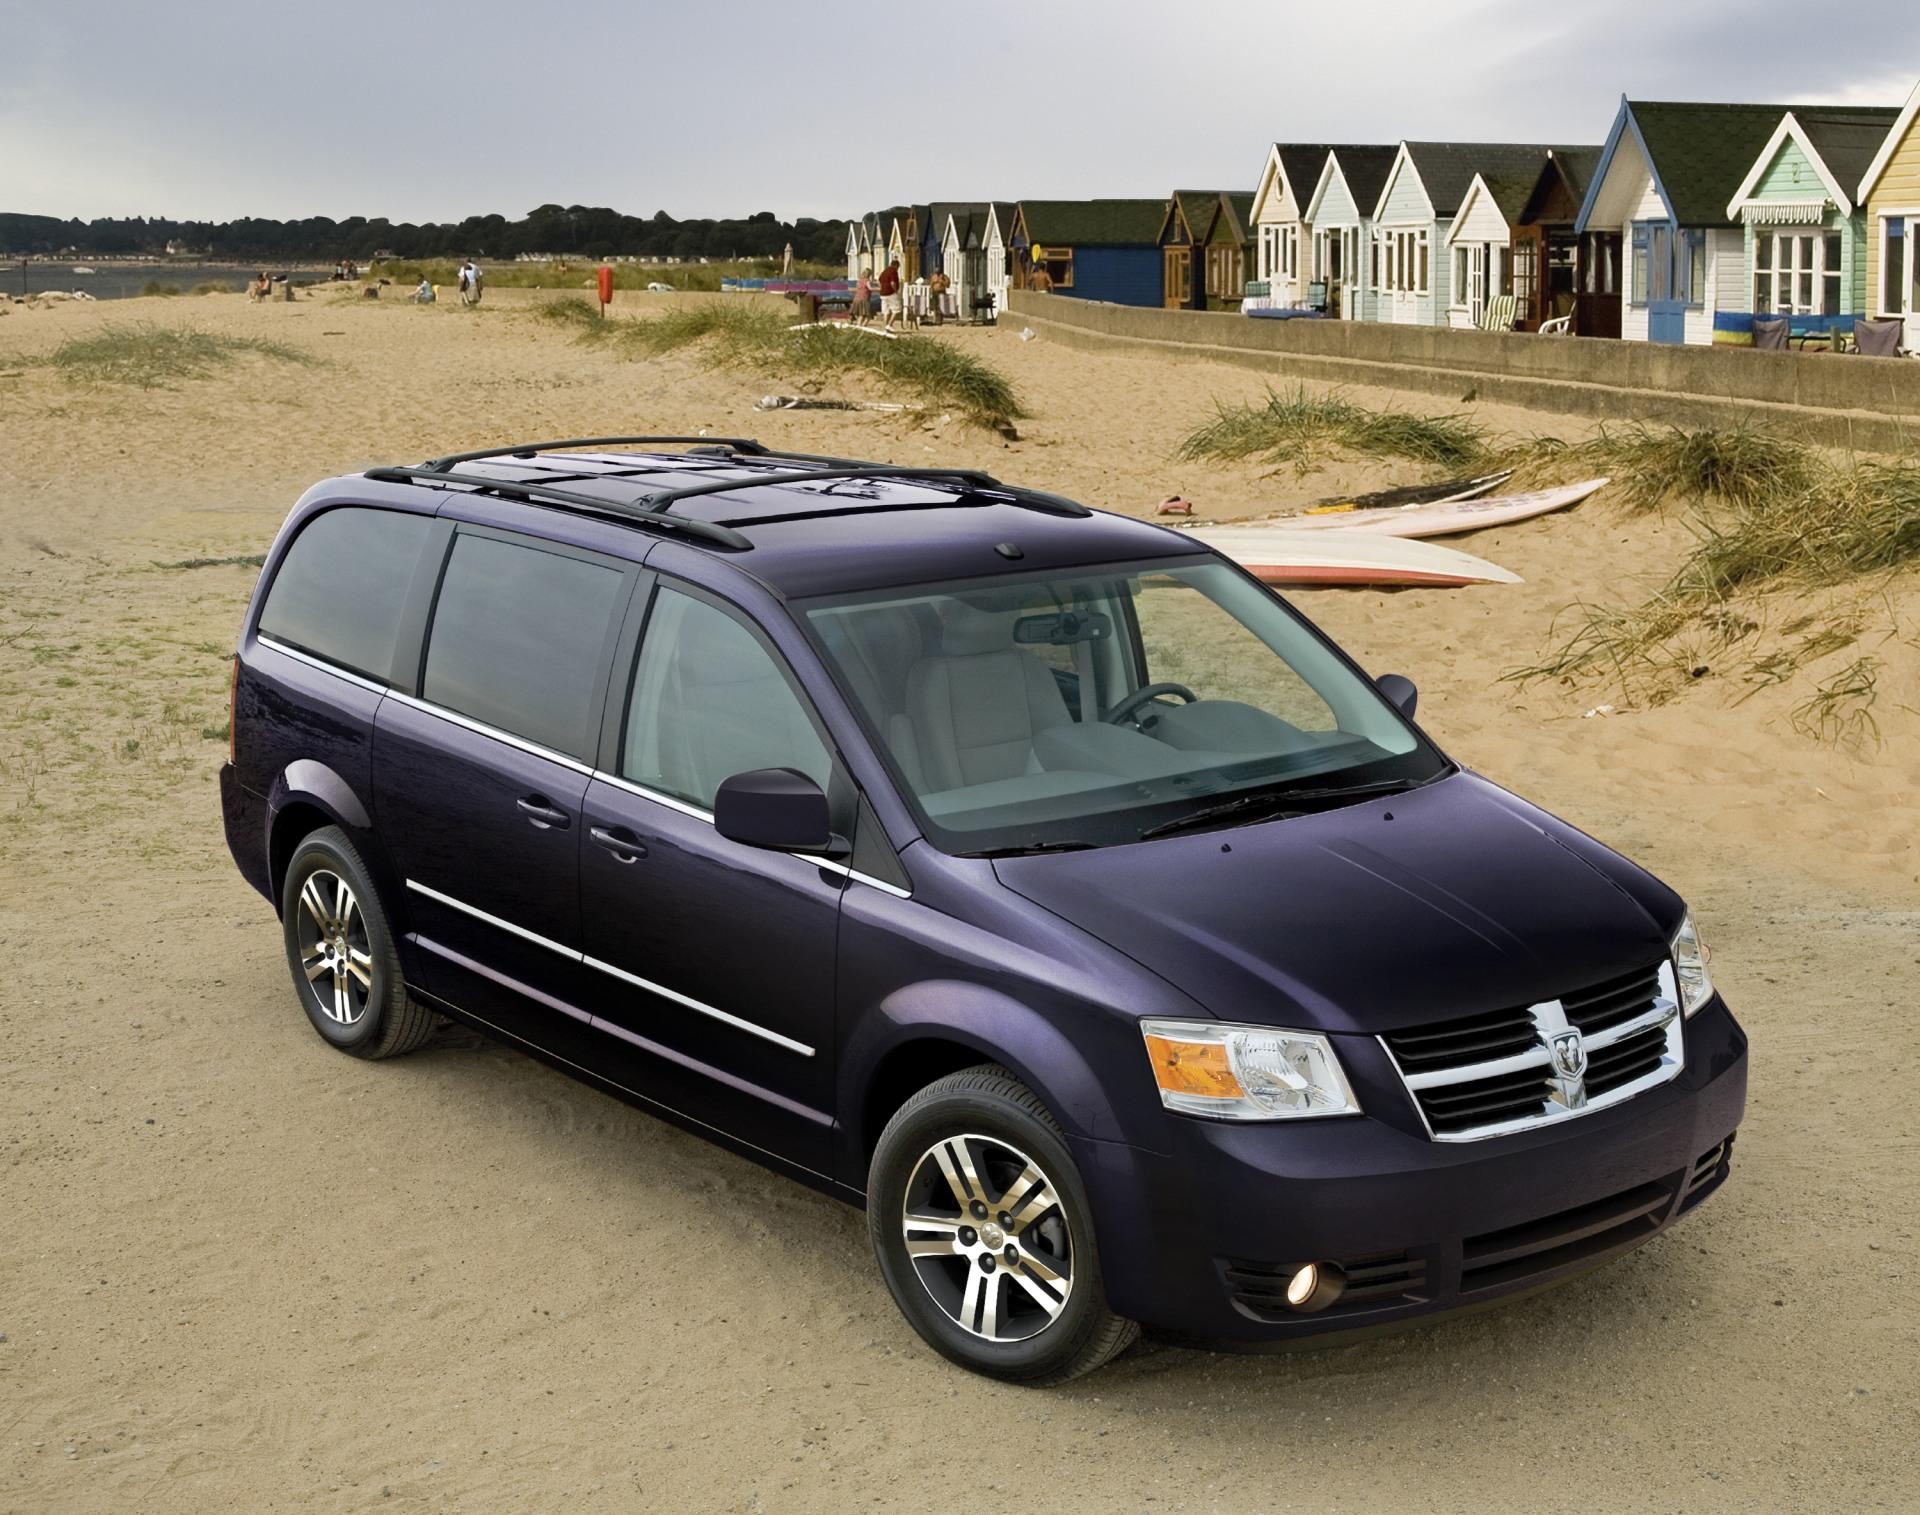 2010 dodge grand caravan. Black Bedroom Furniture Sets. Home Design Ideas